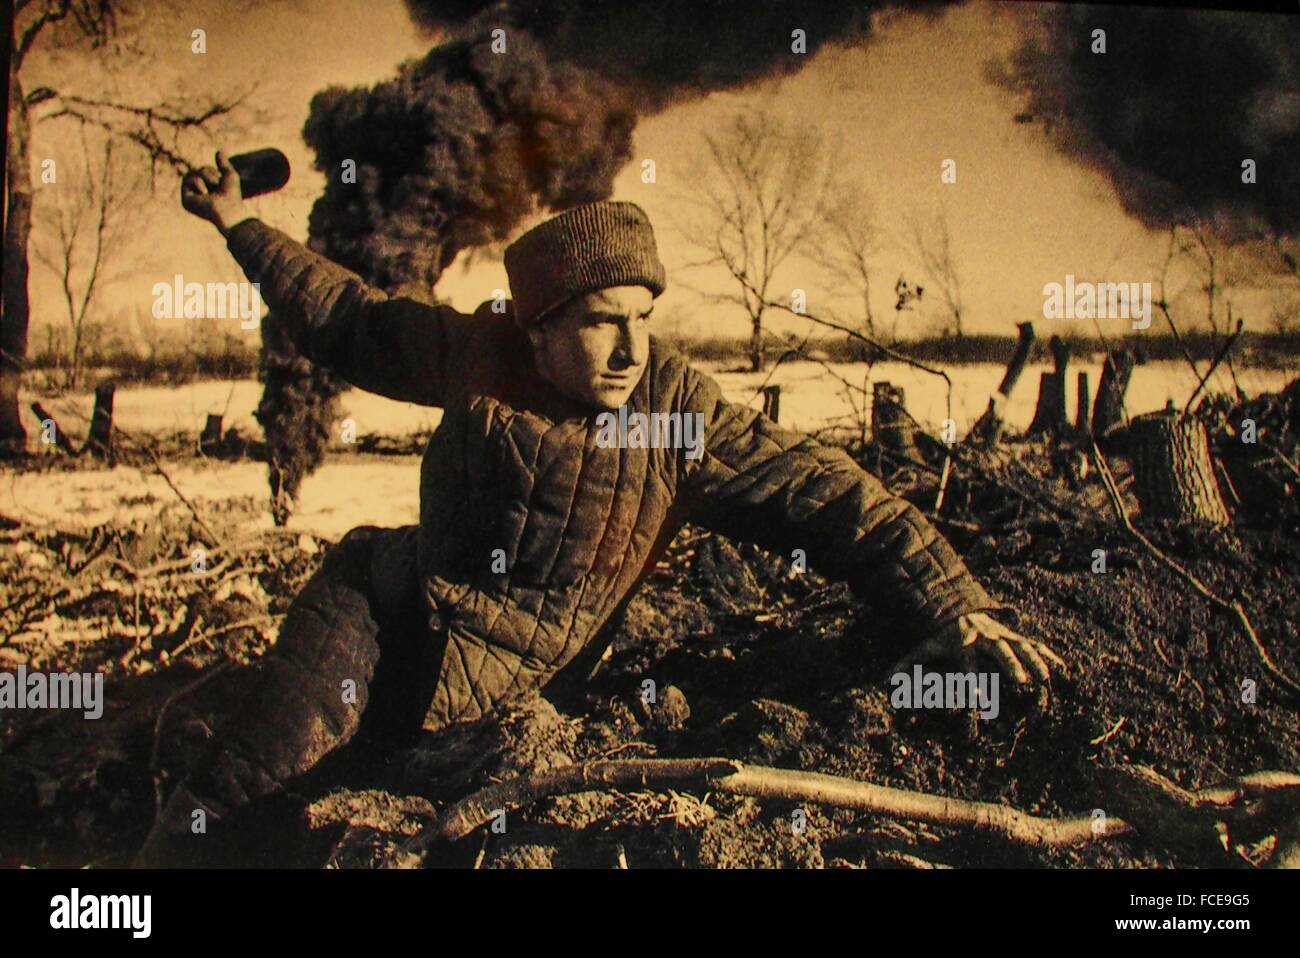 World War II- Red army soldier during the Battle of Stalingrad. - Stock Image